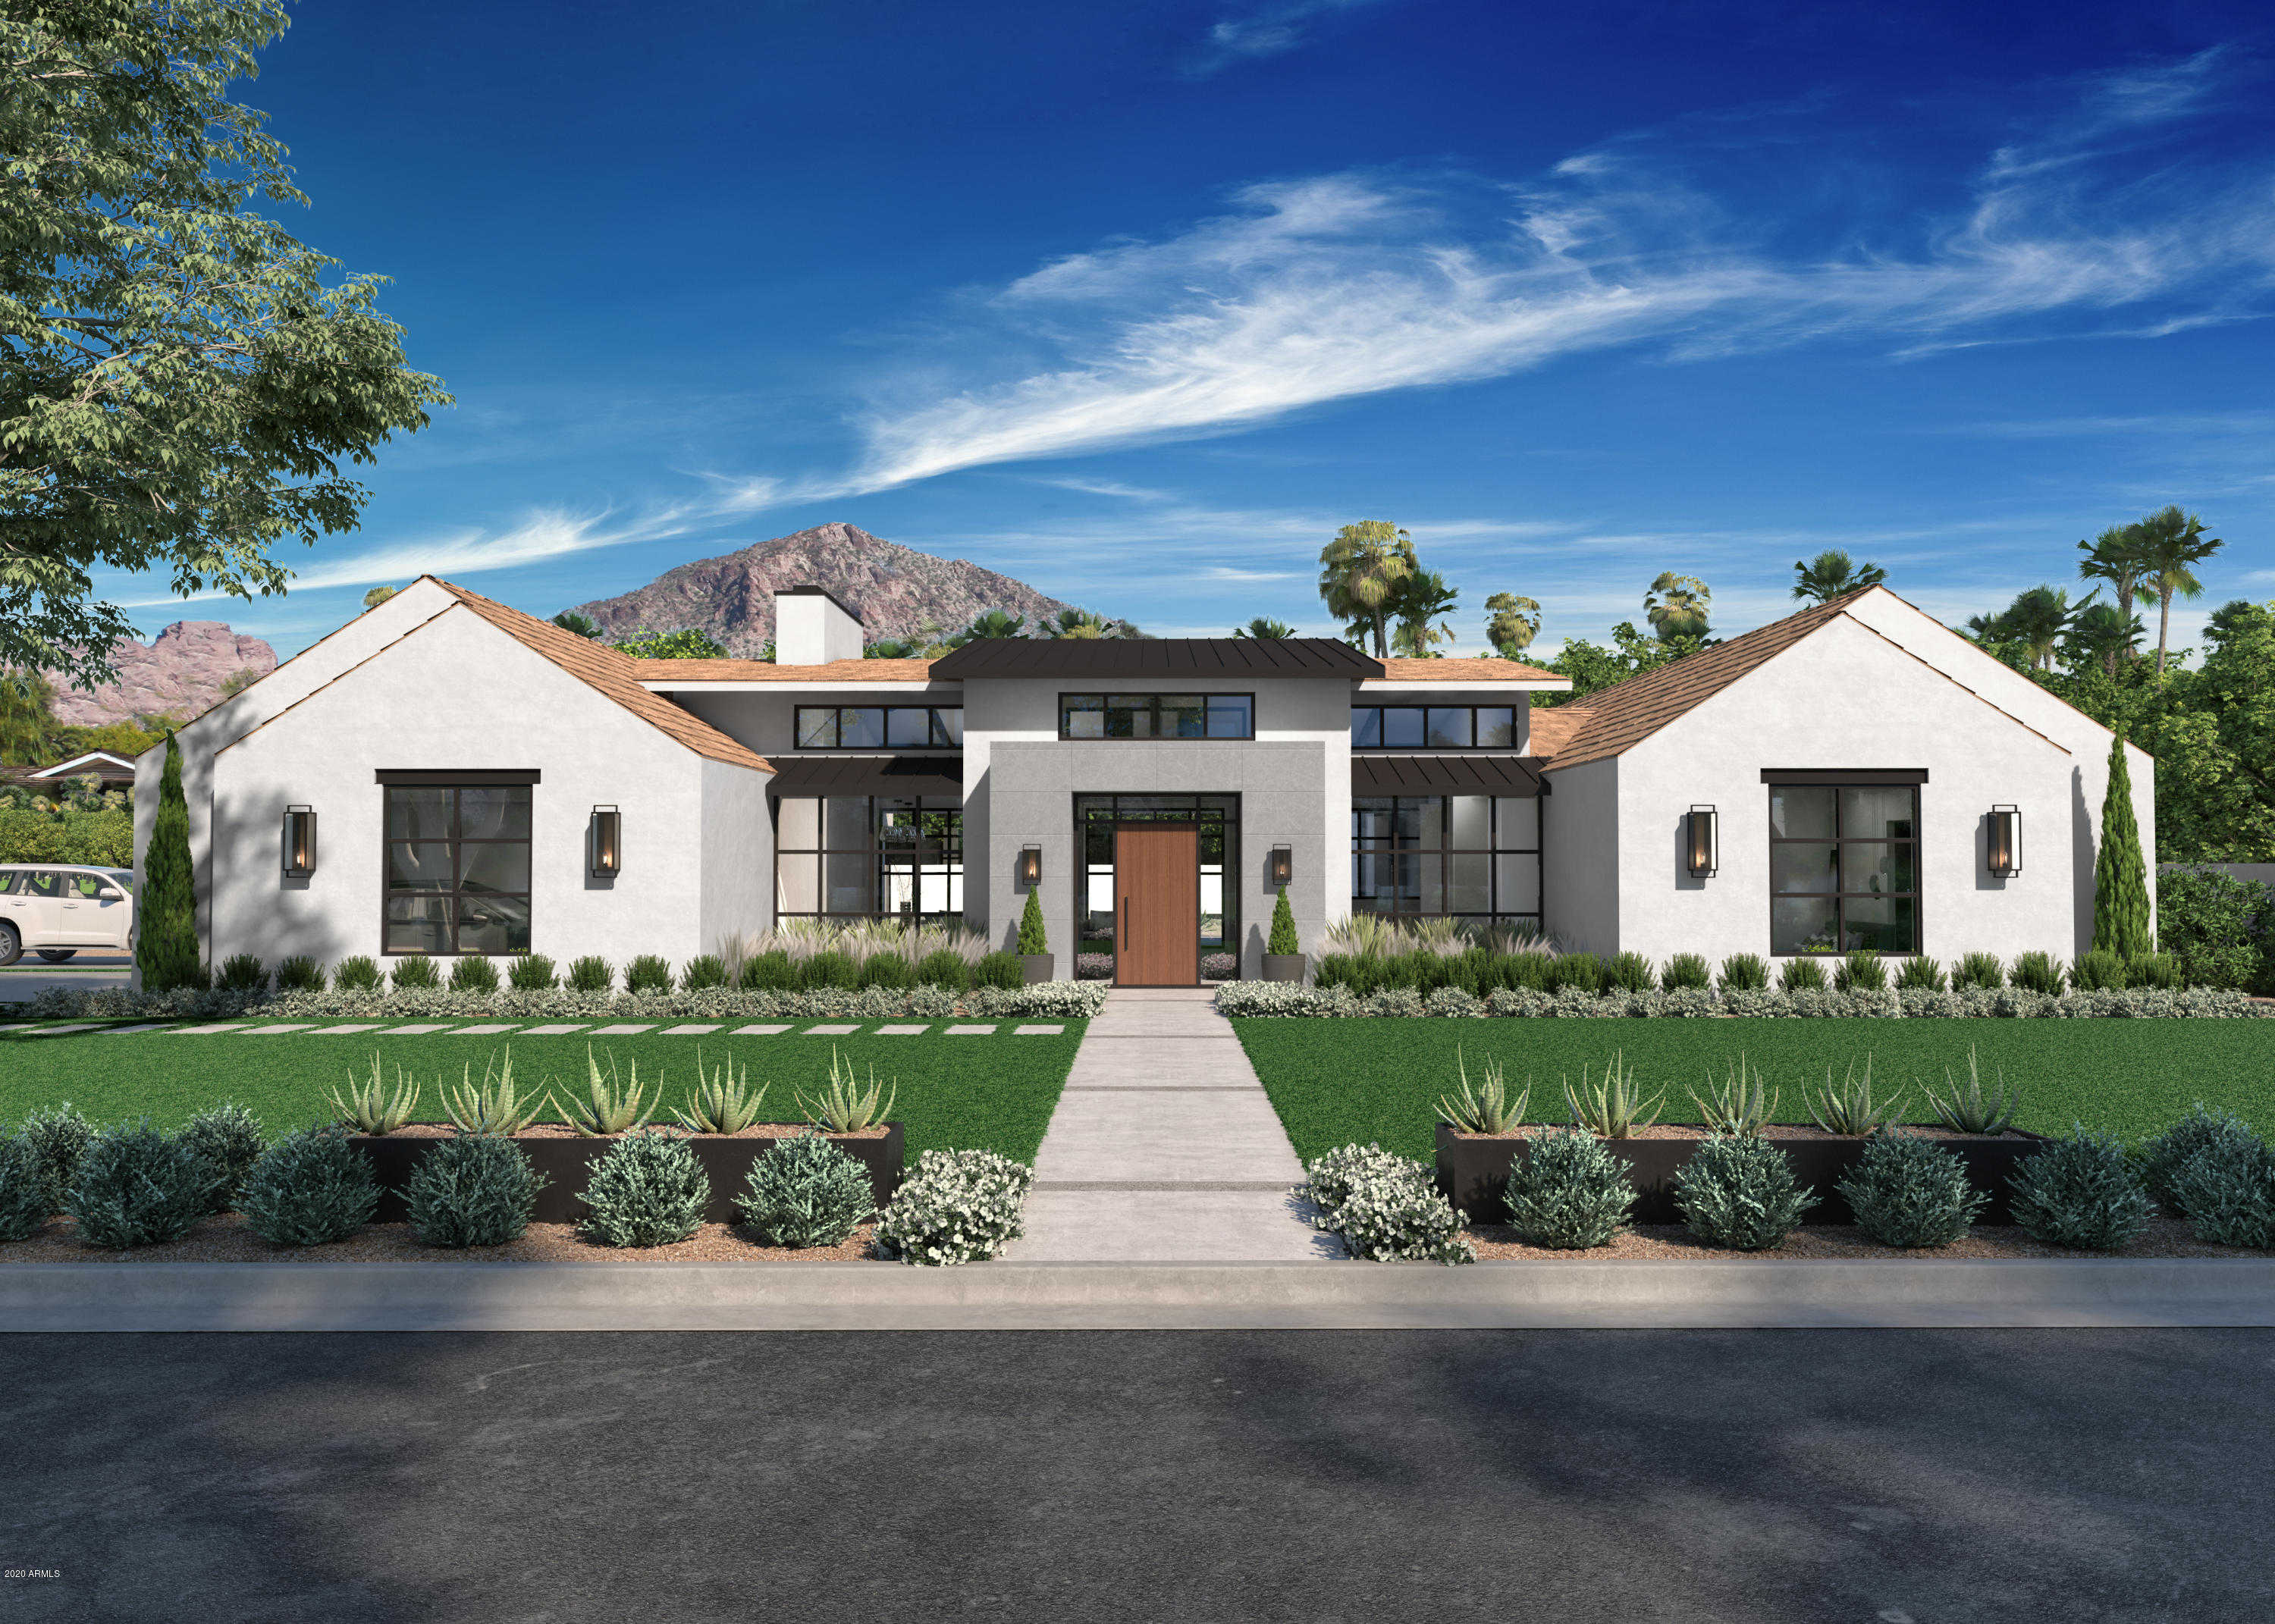 $3,500,000 - 5Br/6Ba - Home for Sale in El Camello 2, Scottsdale